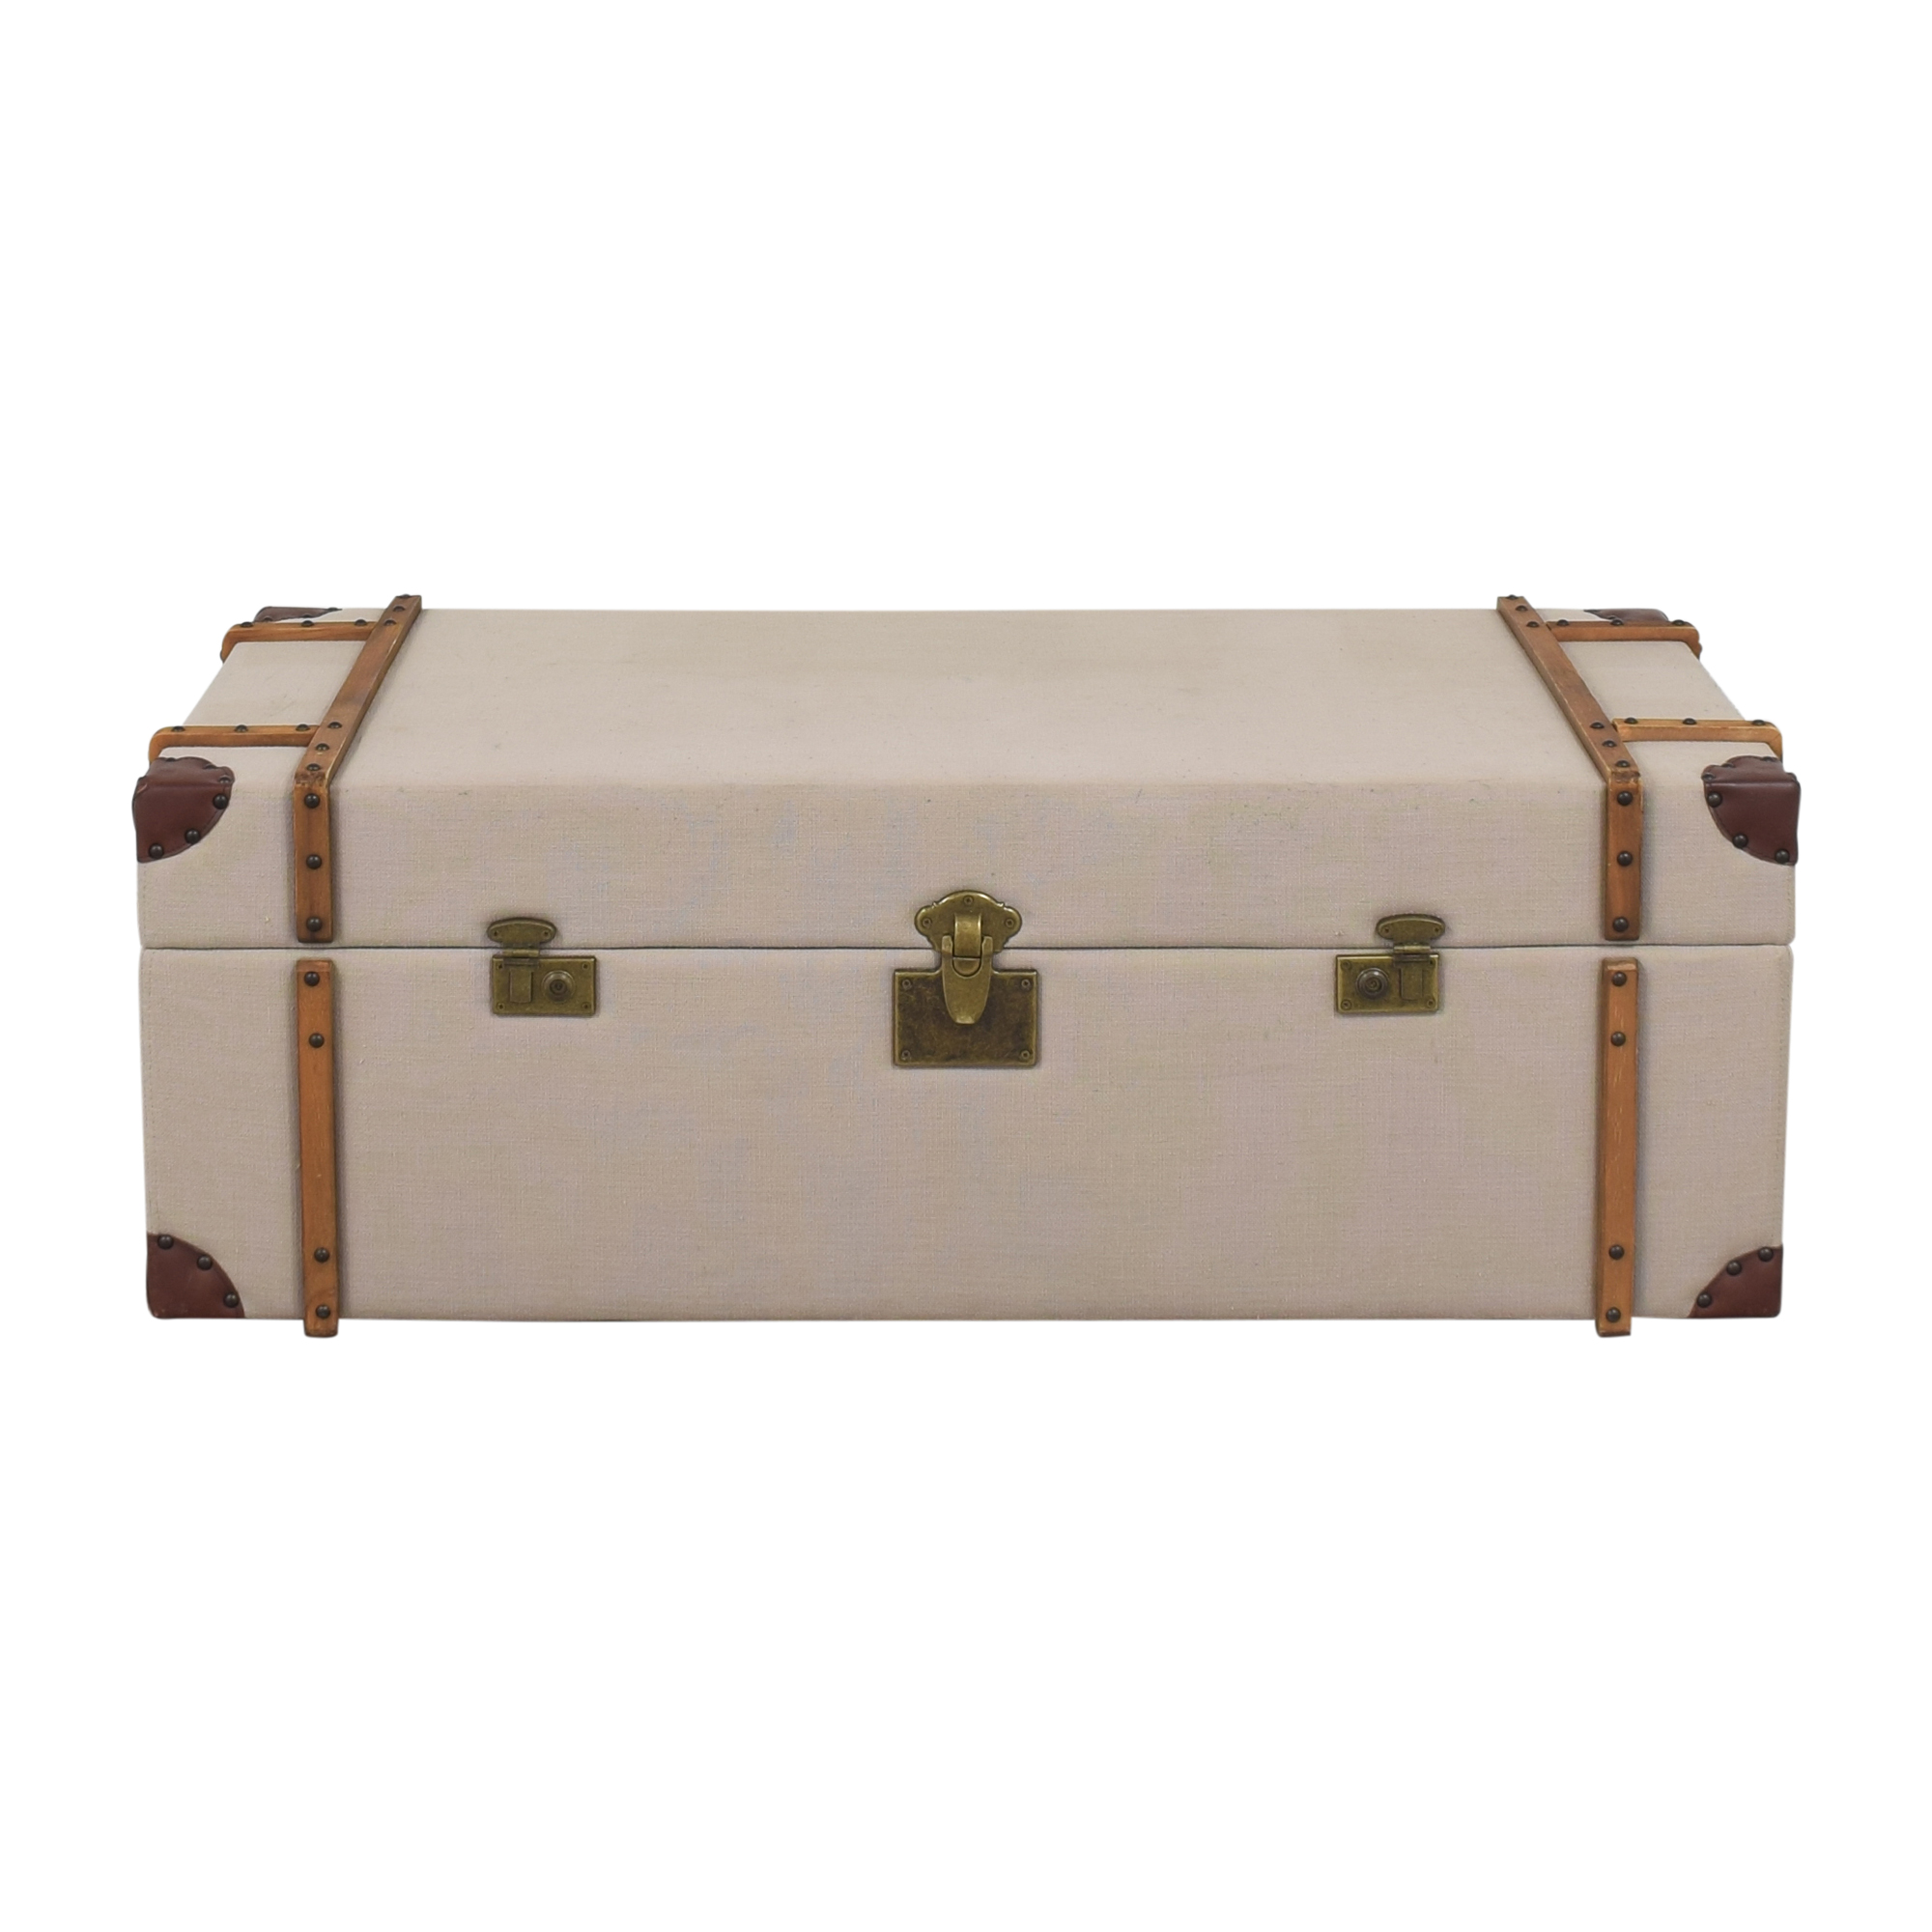 Overstock Overstock Journey Trunk Coffee Table beige and brown